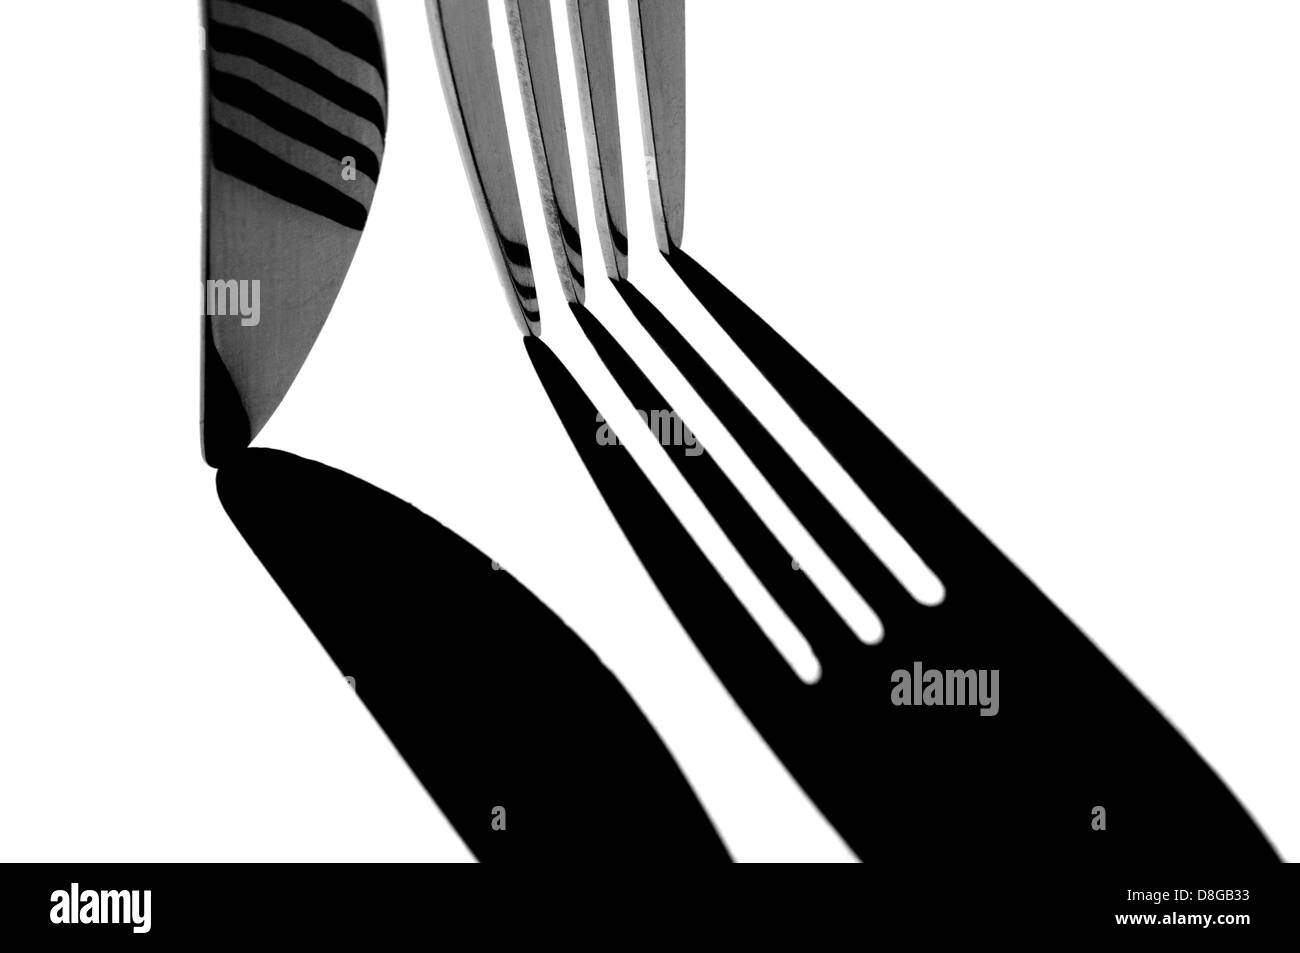 Black and white processed cut out image of cutlery. - Stock Image